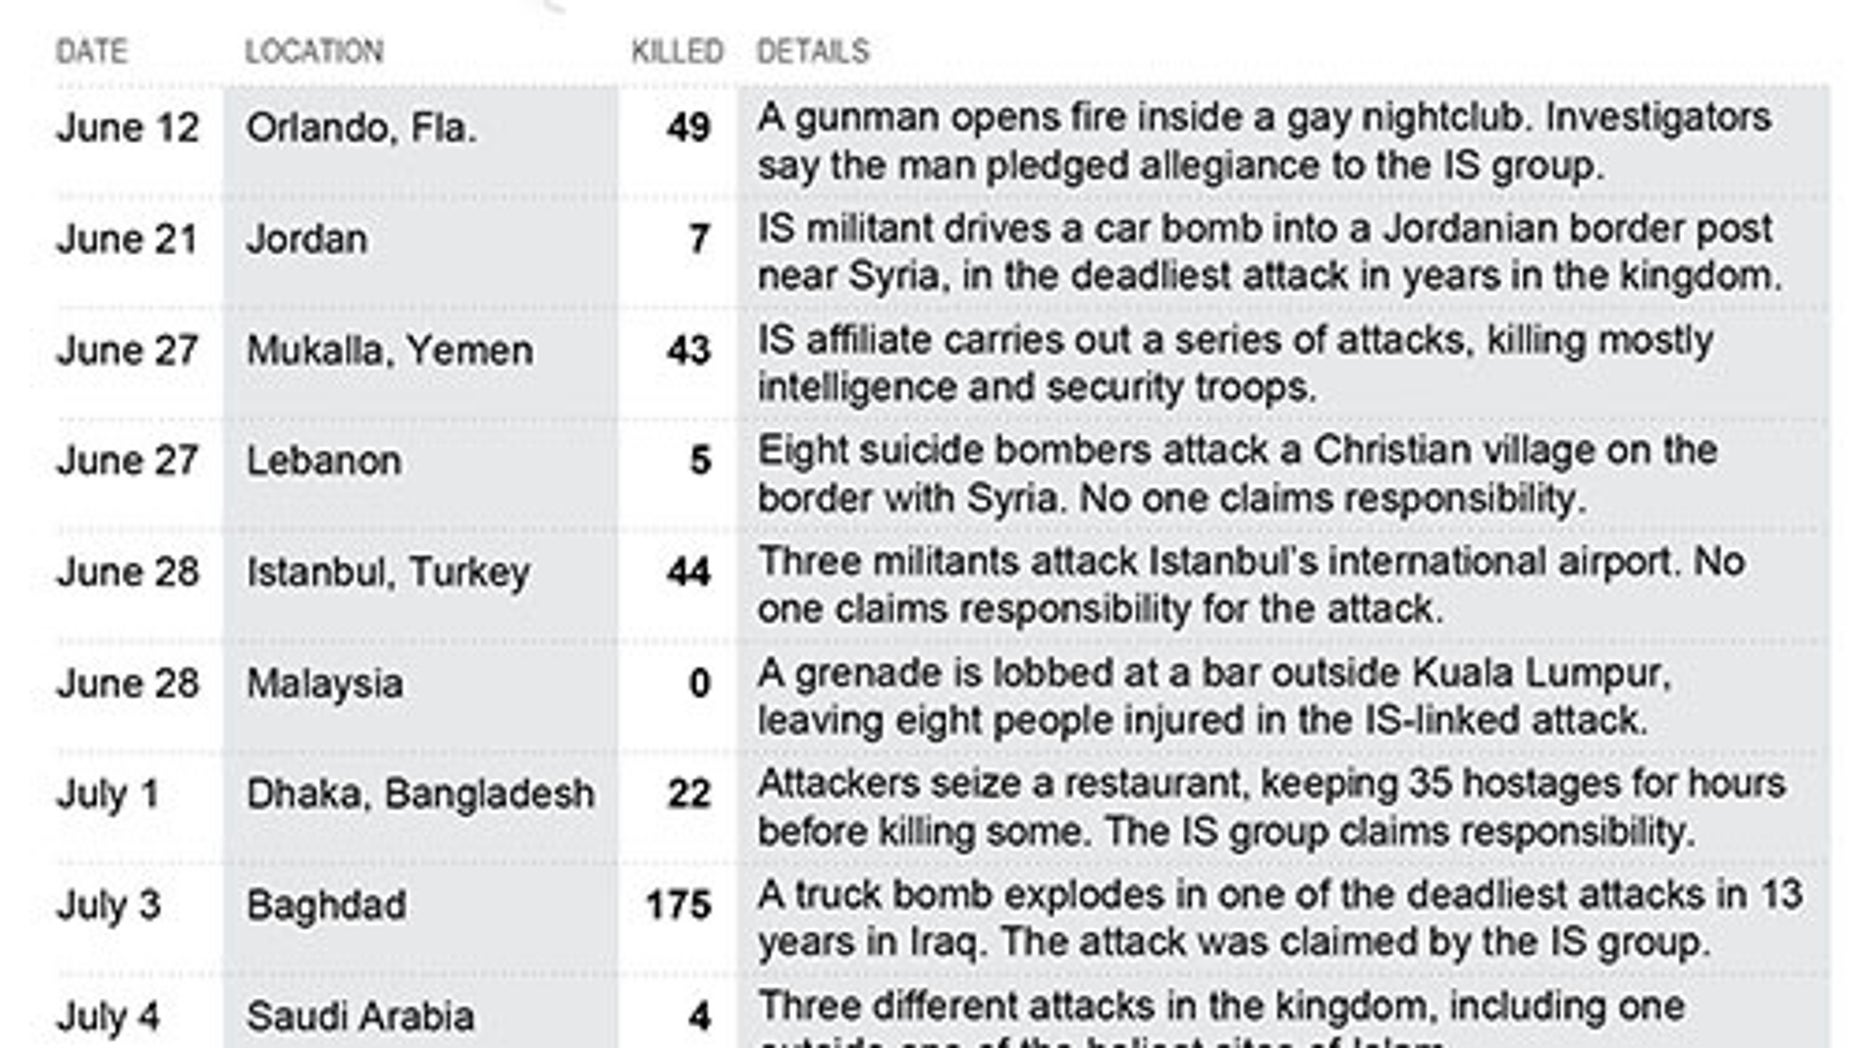 Terror attacks killed 350 people across several continents this Ramadan.